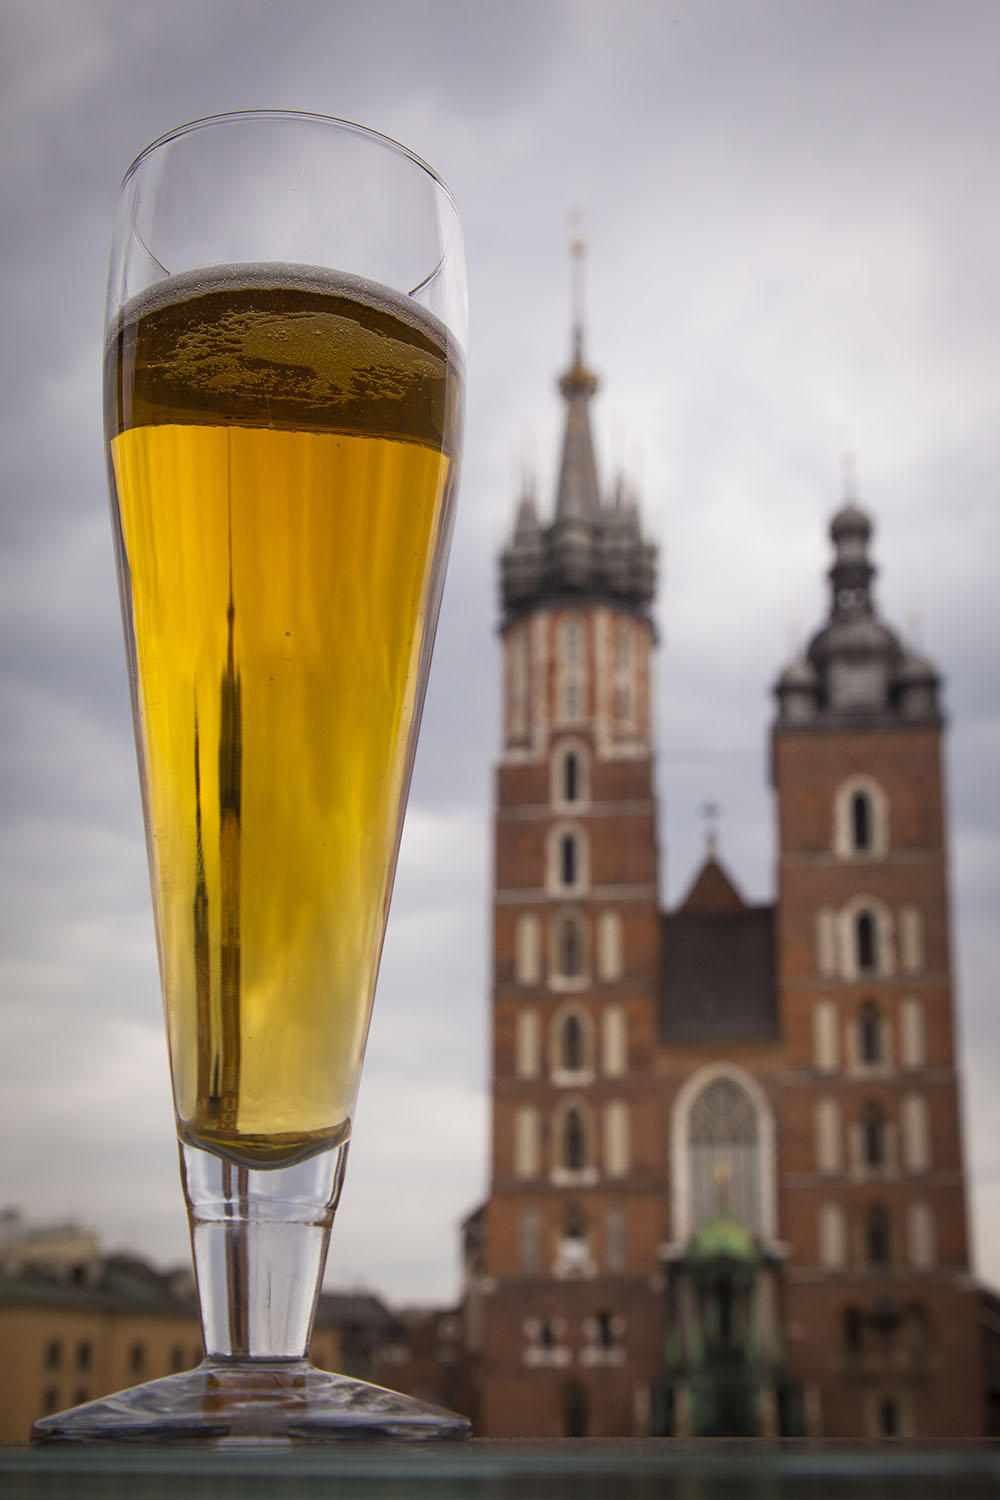 St. Mary´s church in Krakow - as seen through a glass of cold beer. Photo: John Einar Sandvand